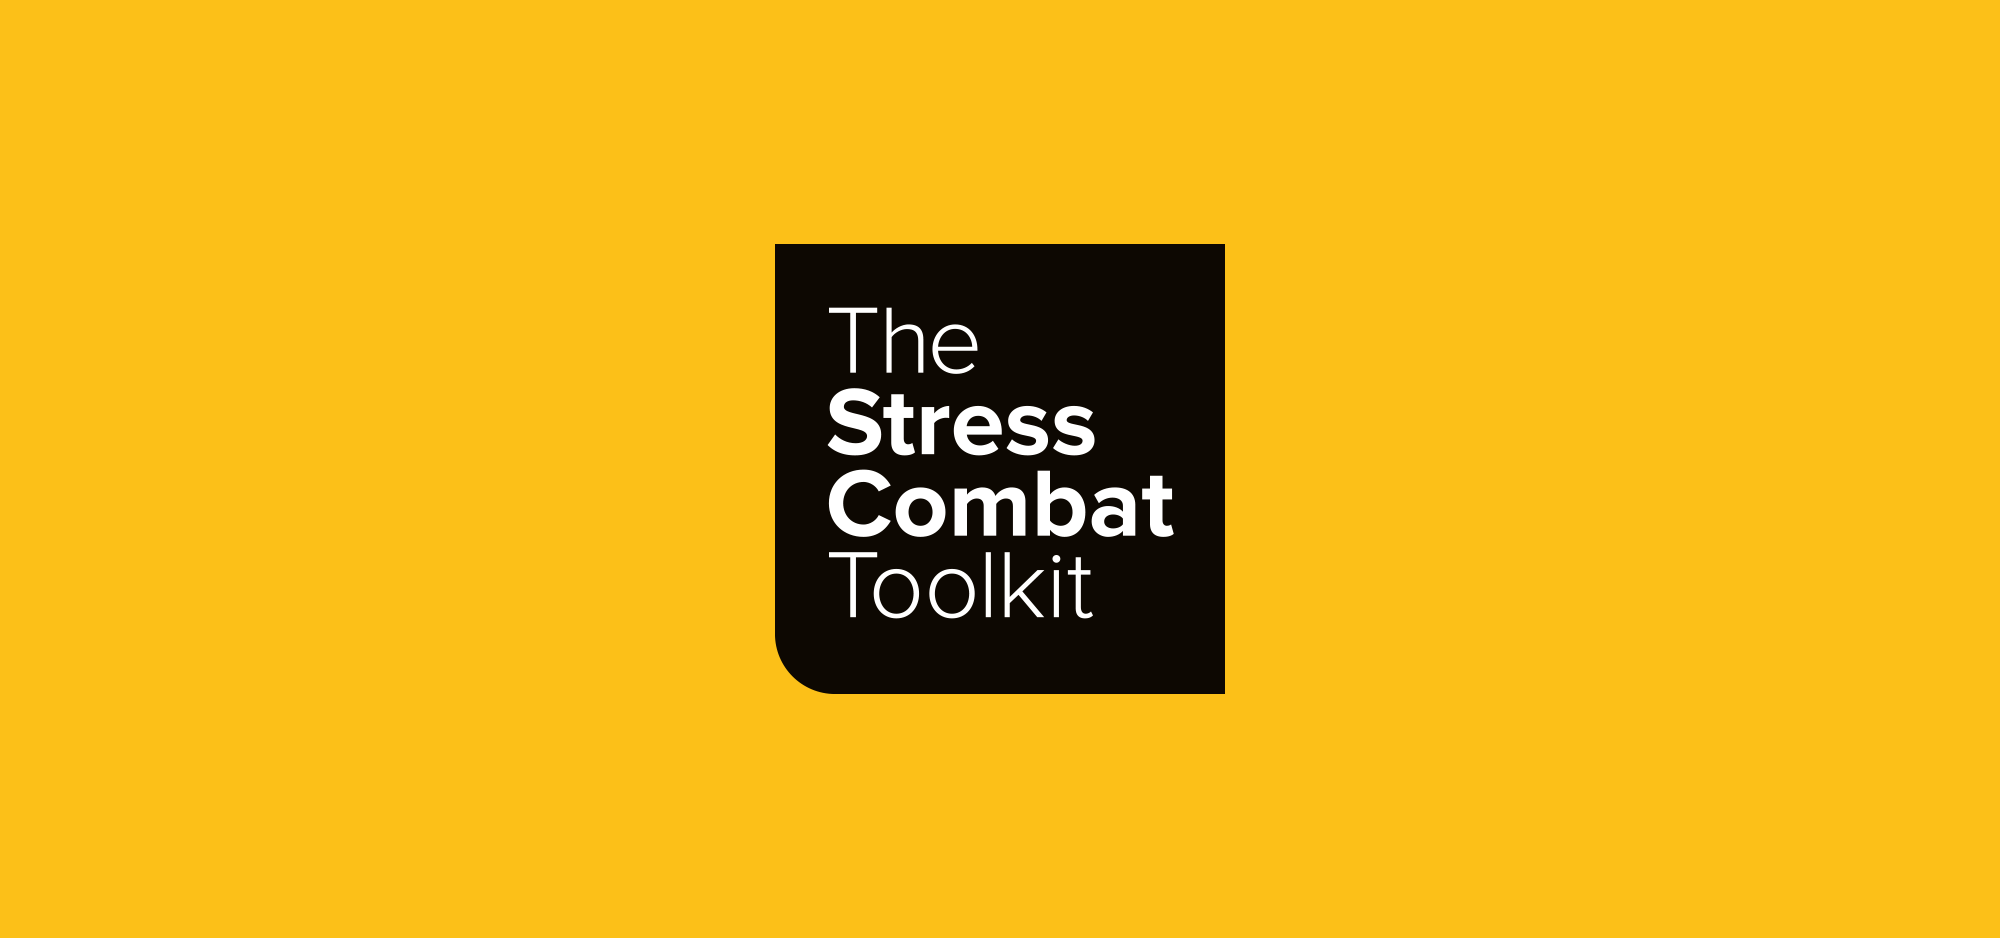 The Stress Combat Toolkit main banner